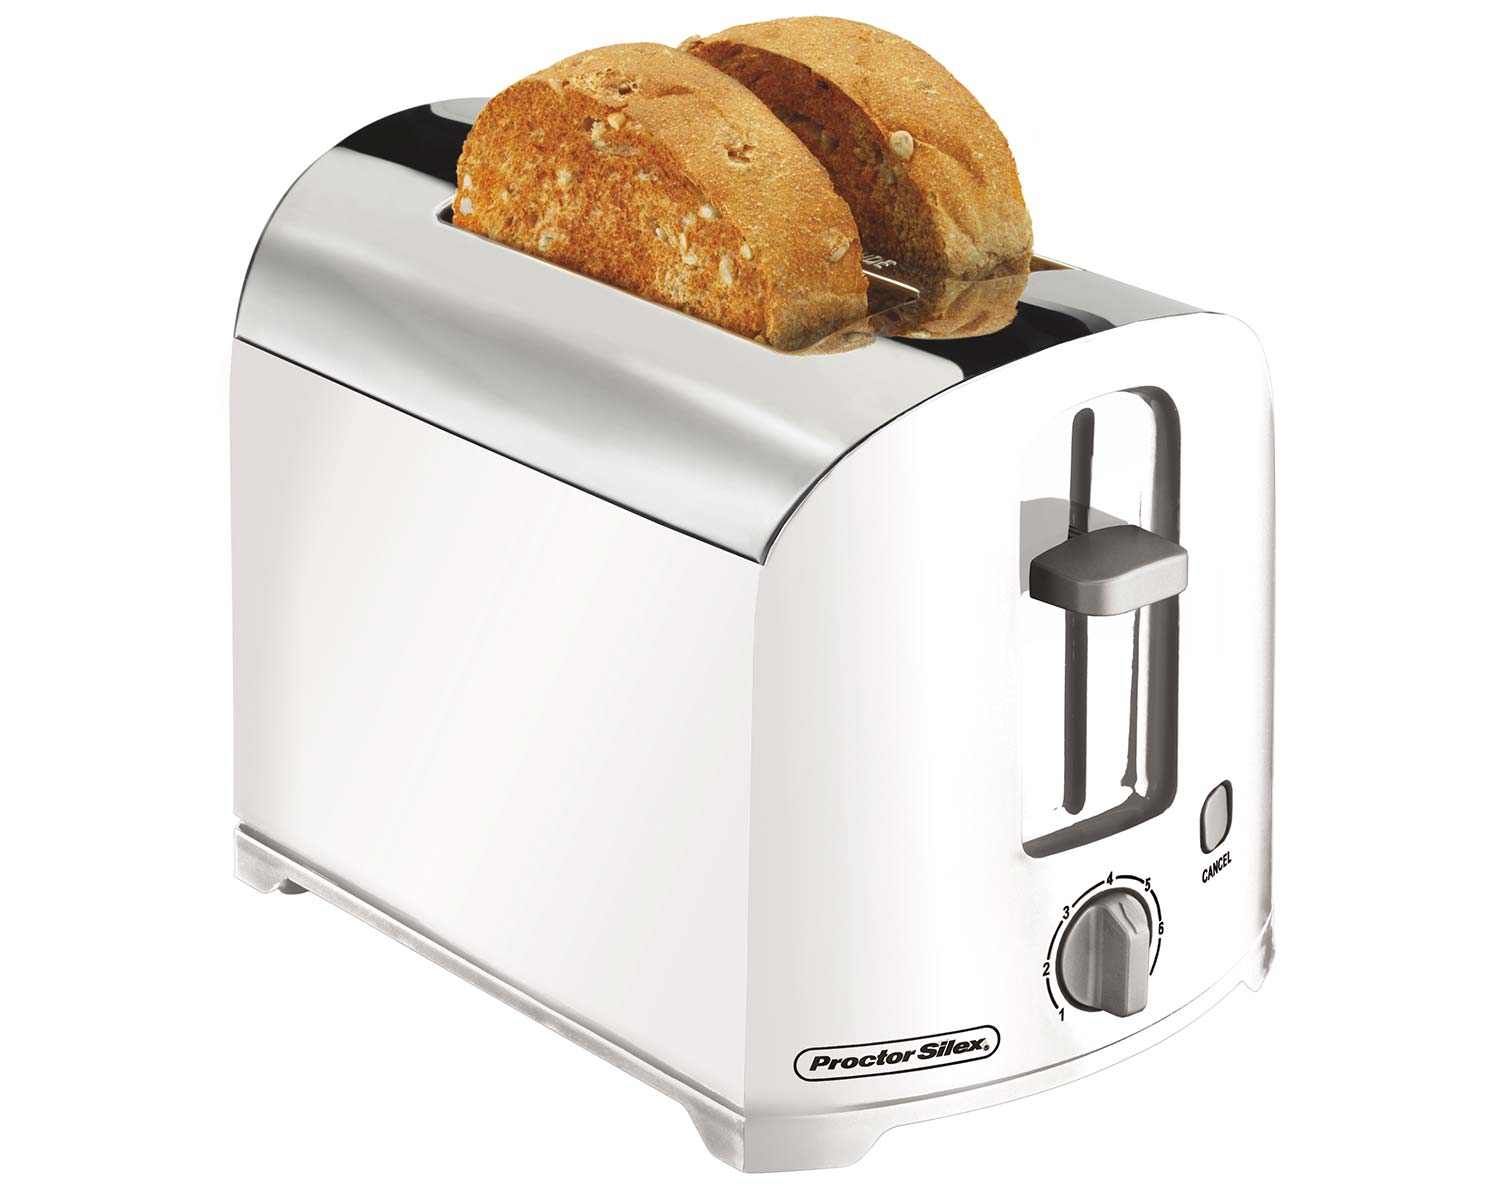 2 Slice Toaster (white)-22632 Small Size